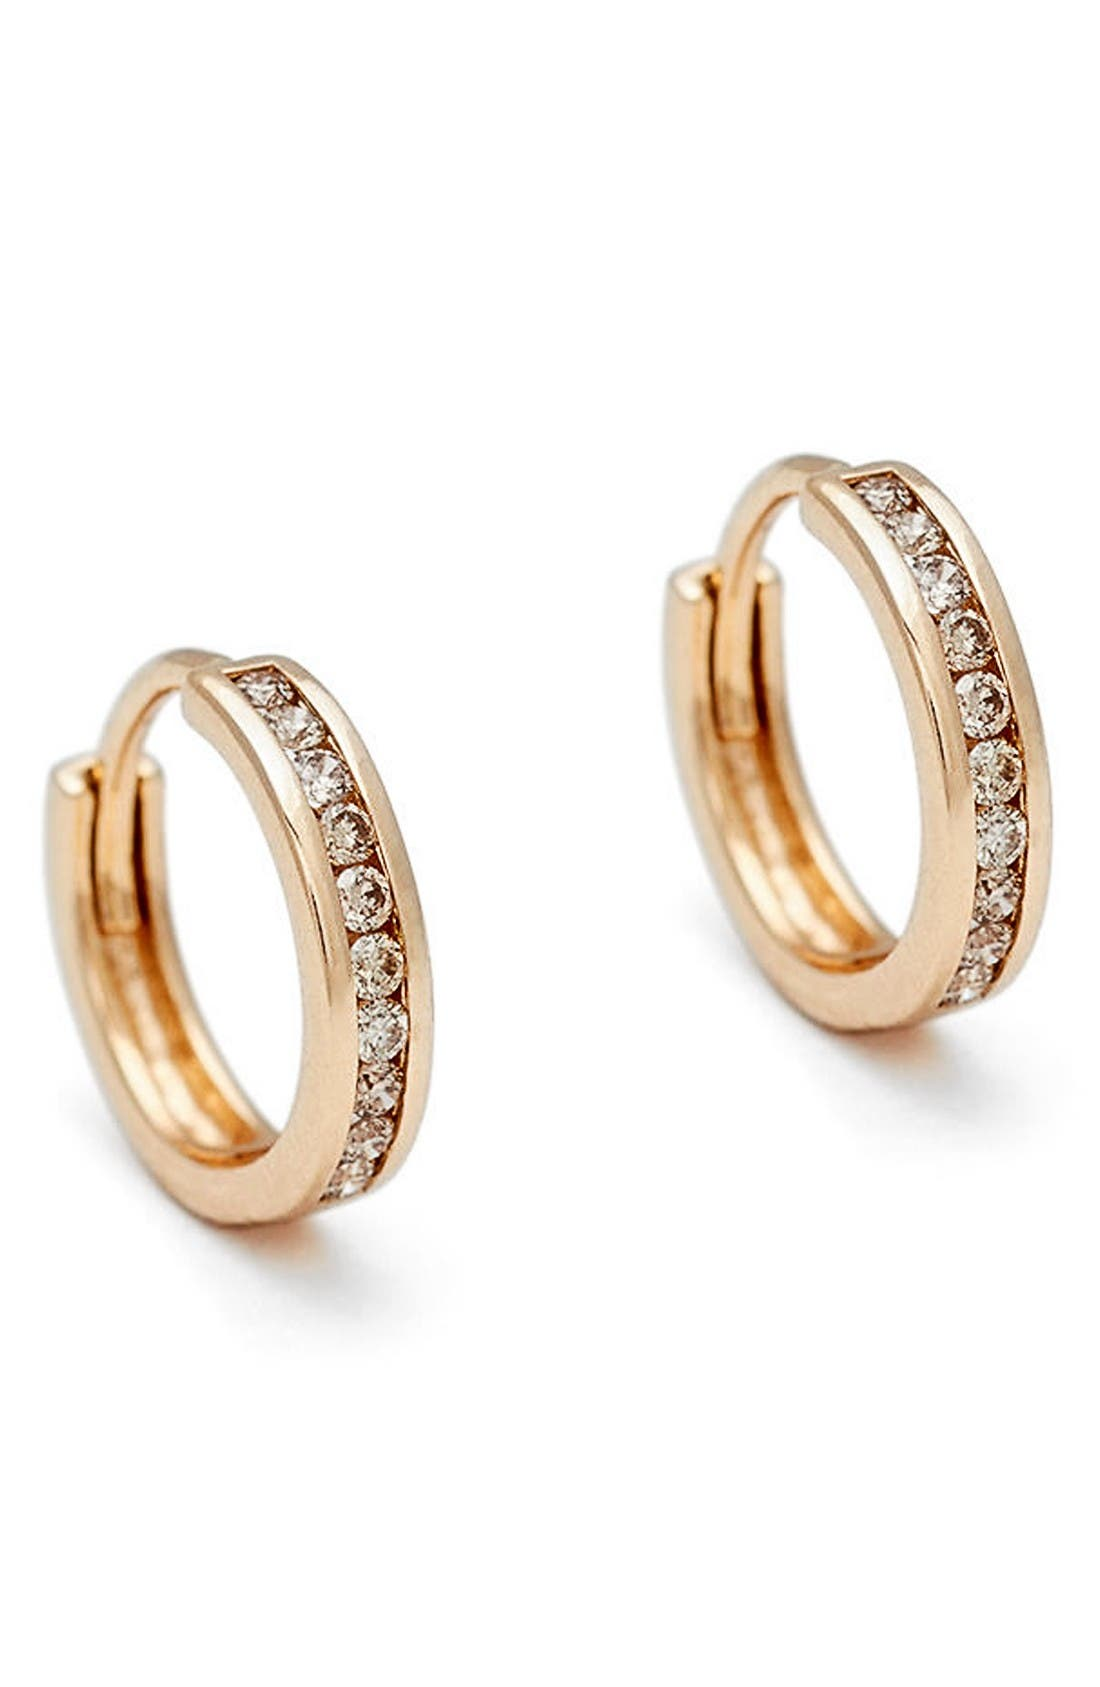 Anna Sheffield Licol Champagne Diamond Hoop Earrings (Nordstrom Exclusive)